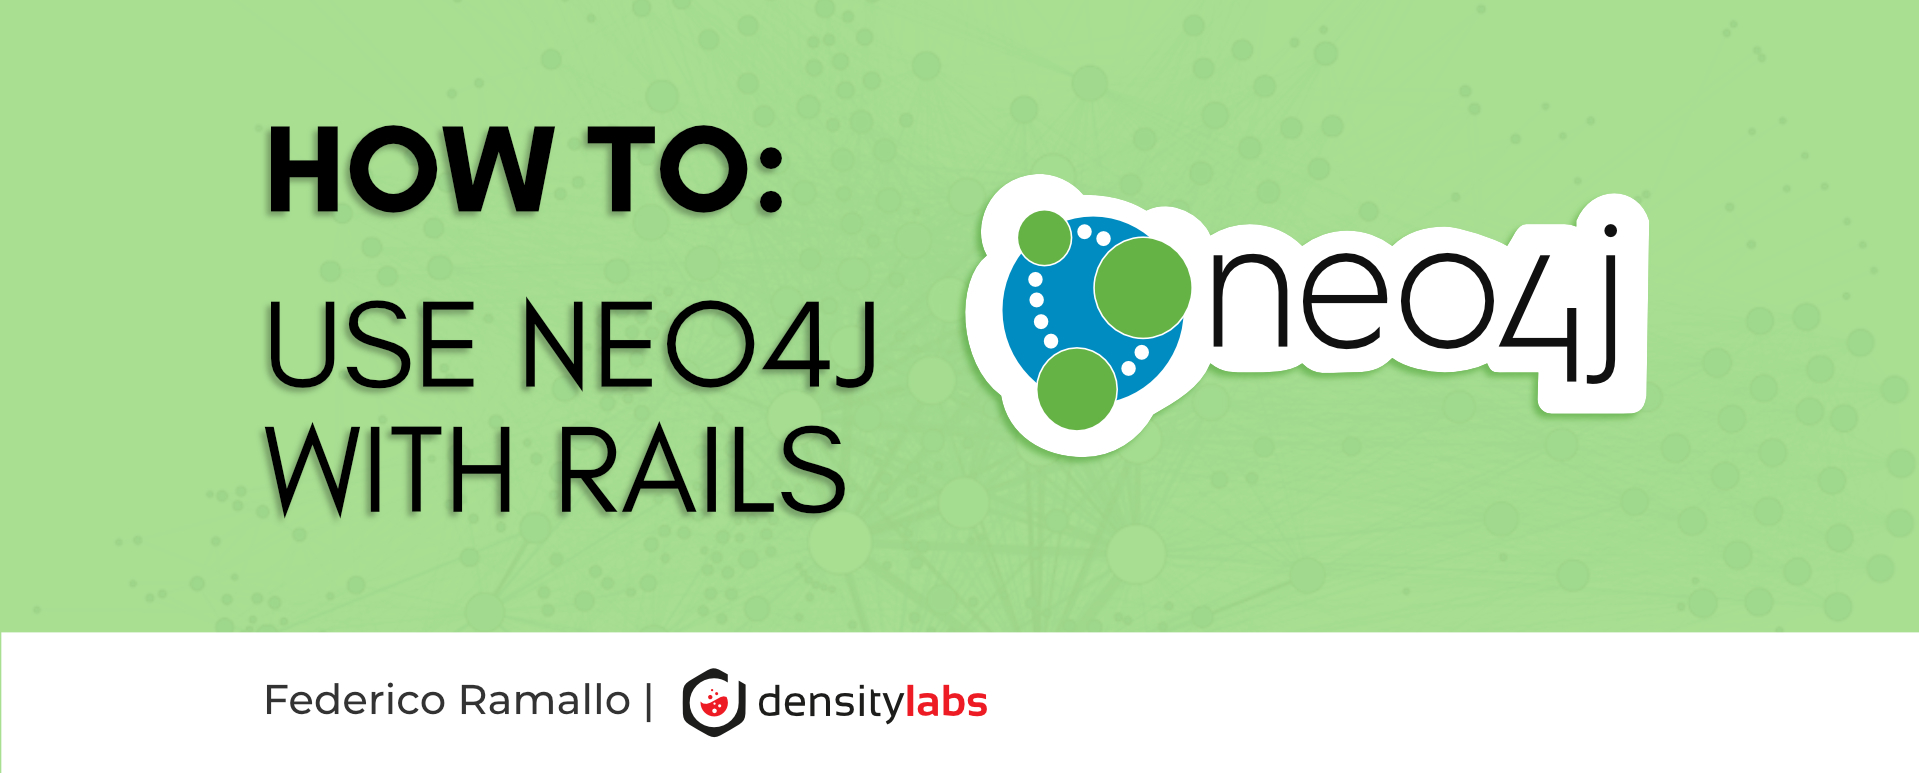 How To Use Neo4j With Rails